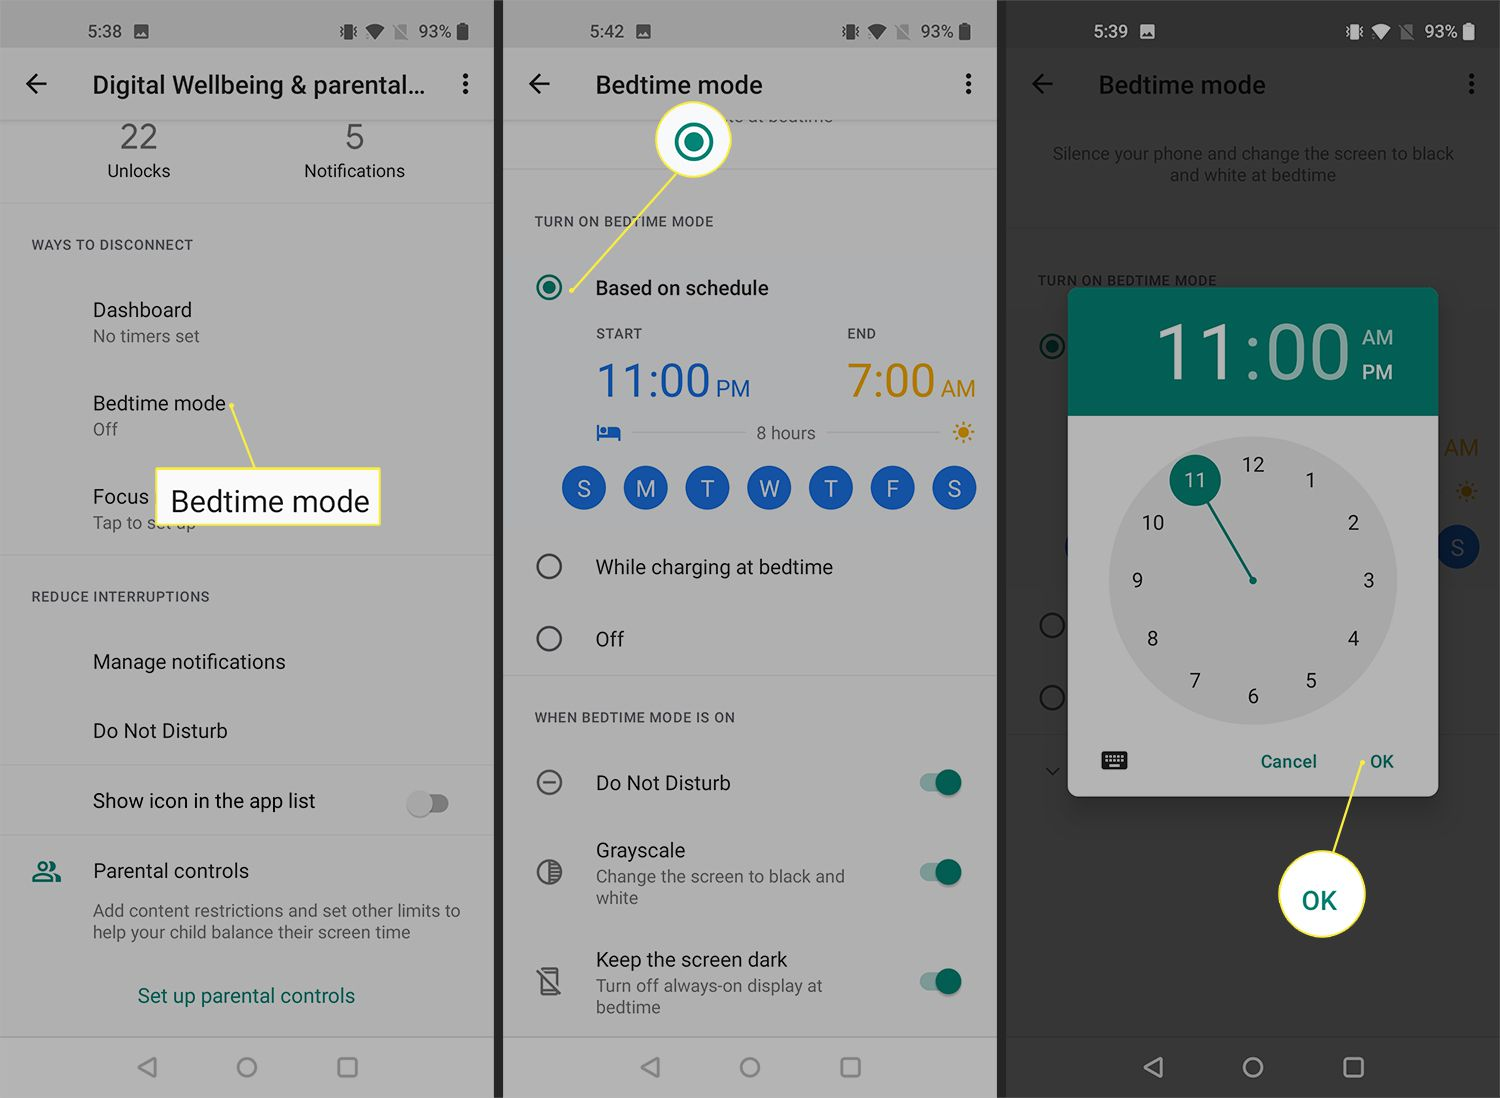 Bedtime mode scheduling options on the OnePlus 9